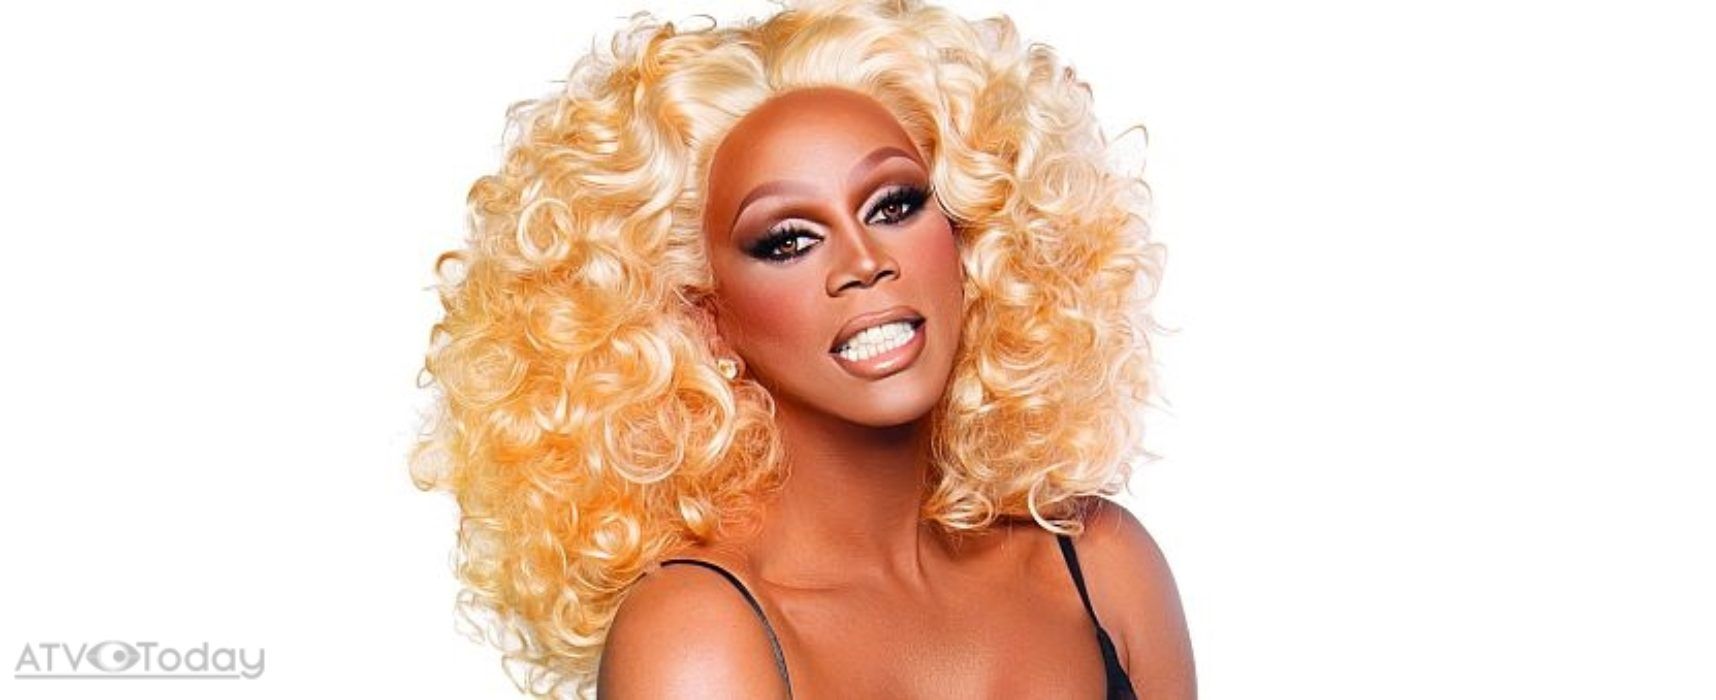 No series for RuPaul chat show